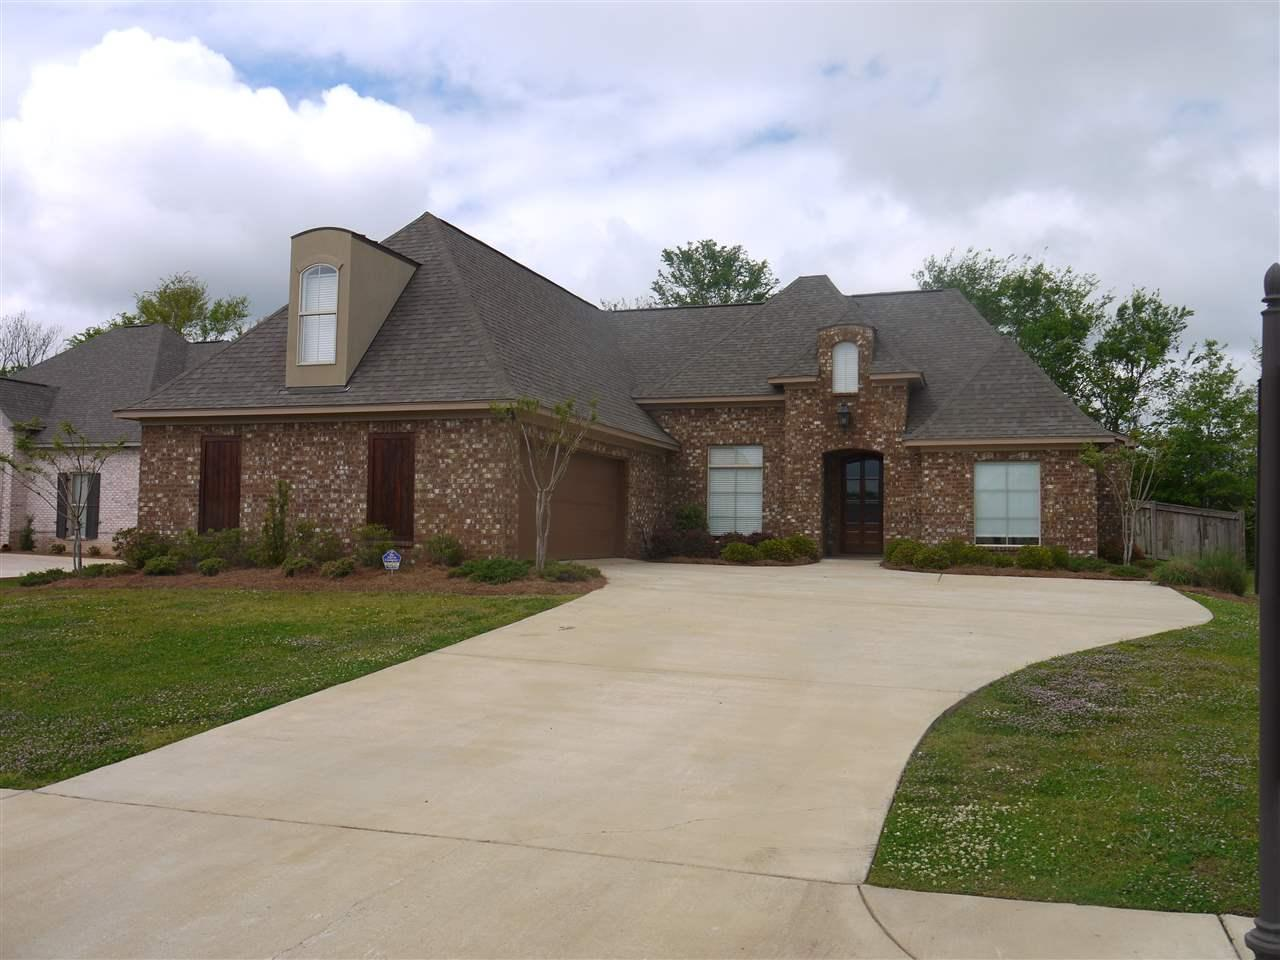 102 sweetbriar cir canton ms mls 284845 era for Usda homes for sale in ms